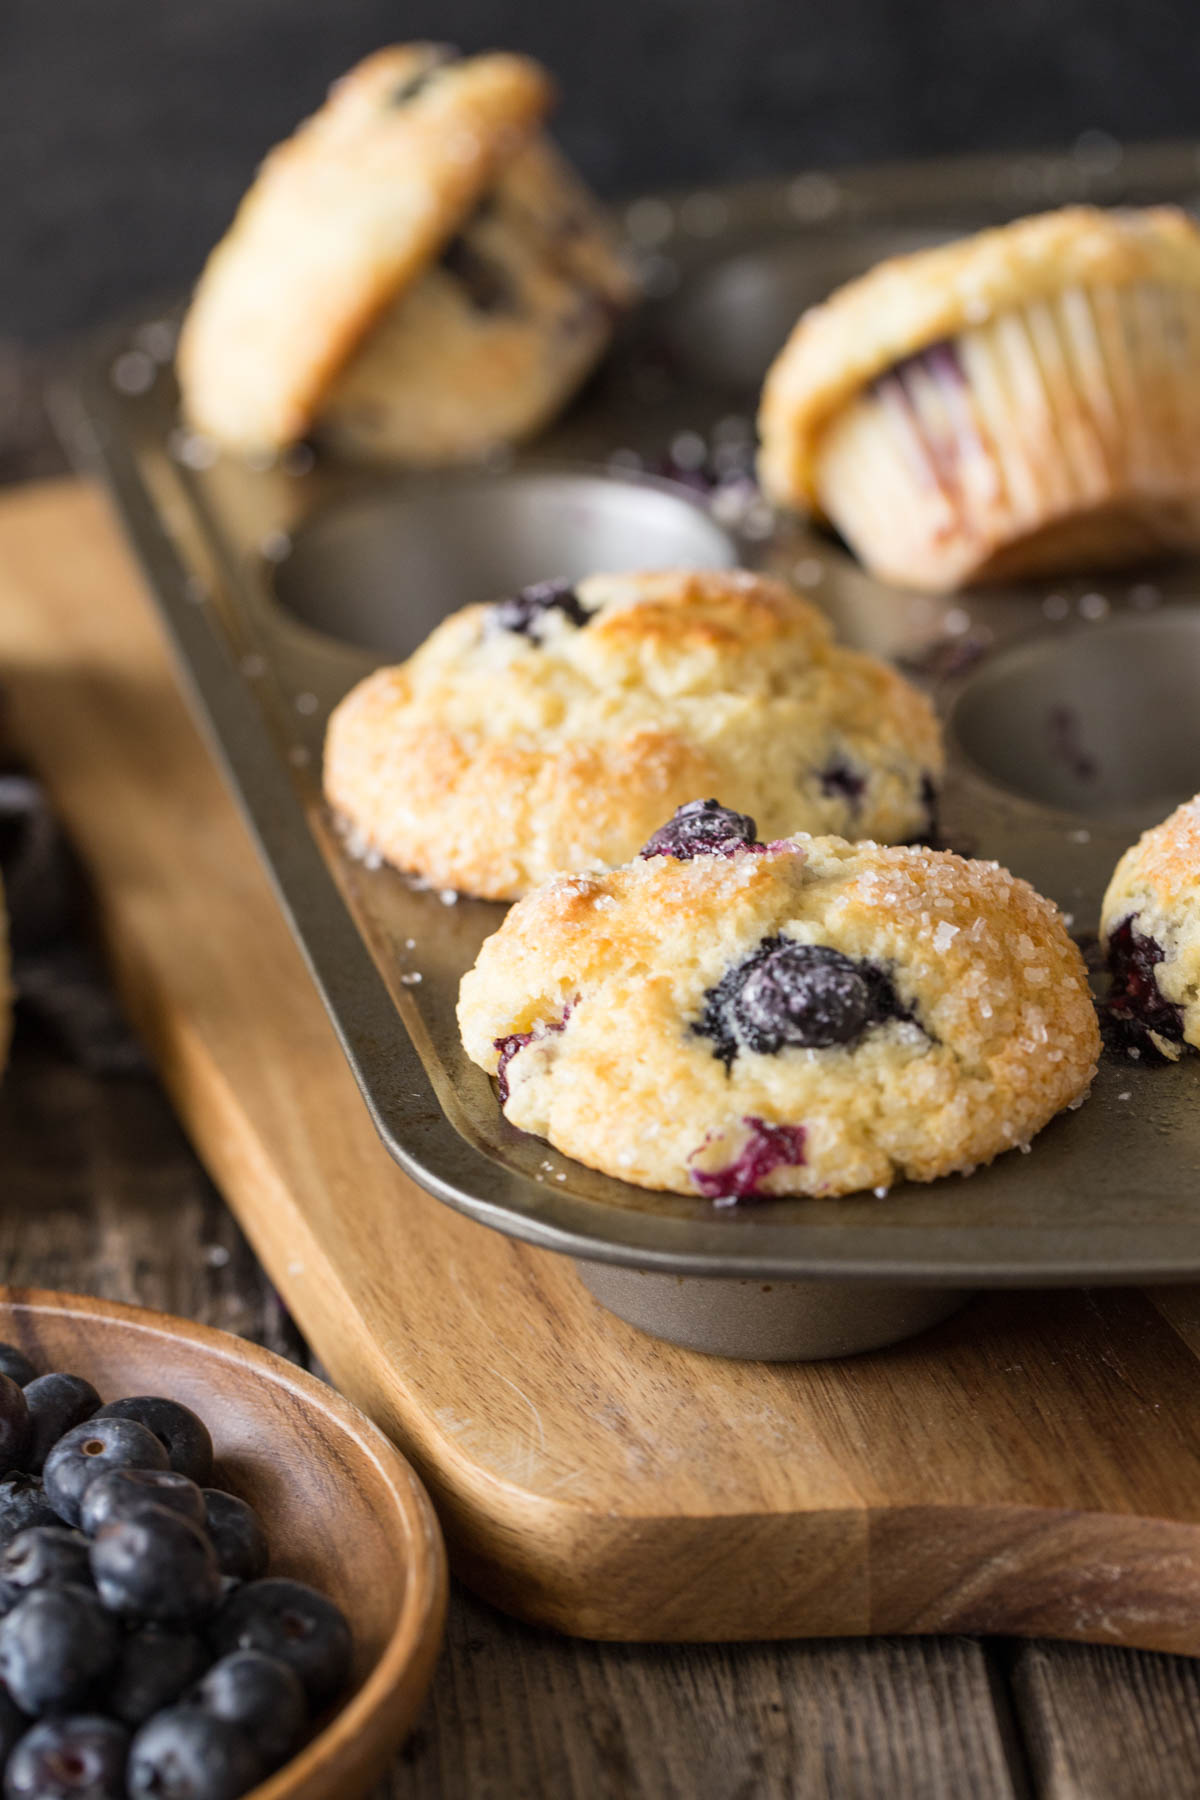 A close up view of Best Ever Buttermilk Blueberry Muffins in a muffin pan.